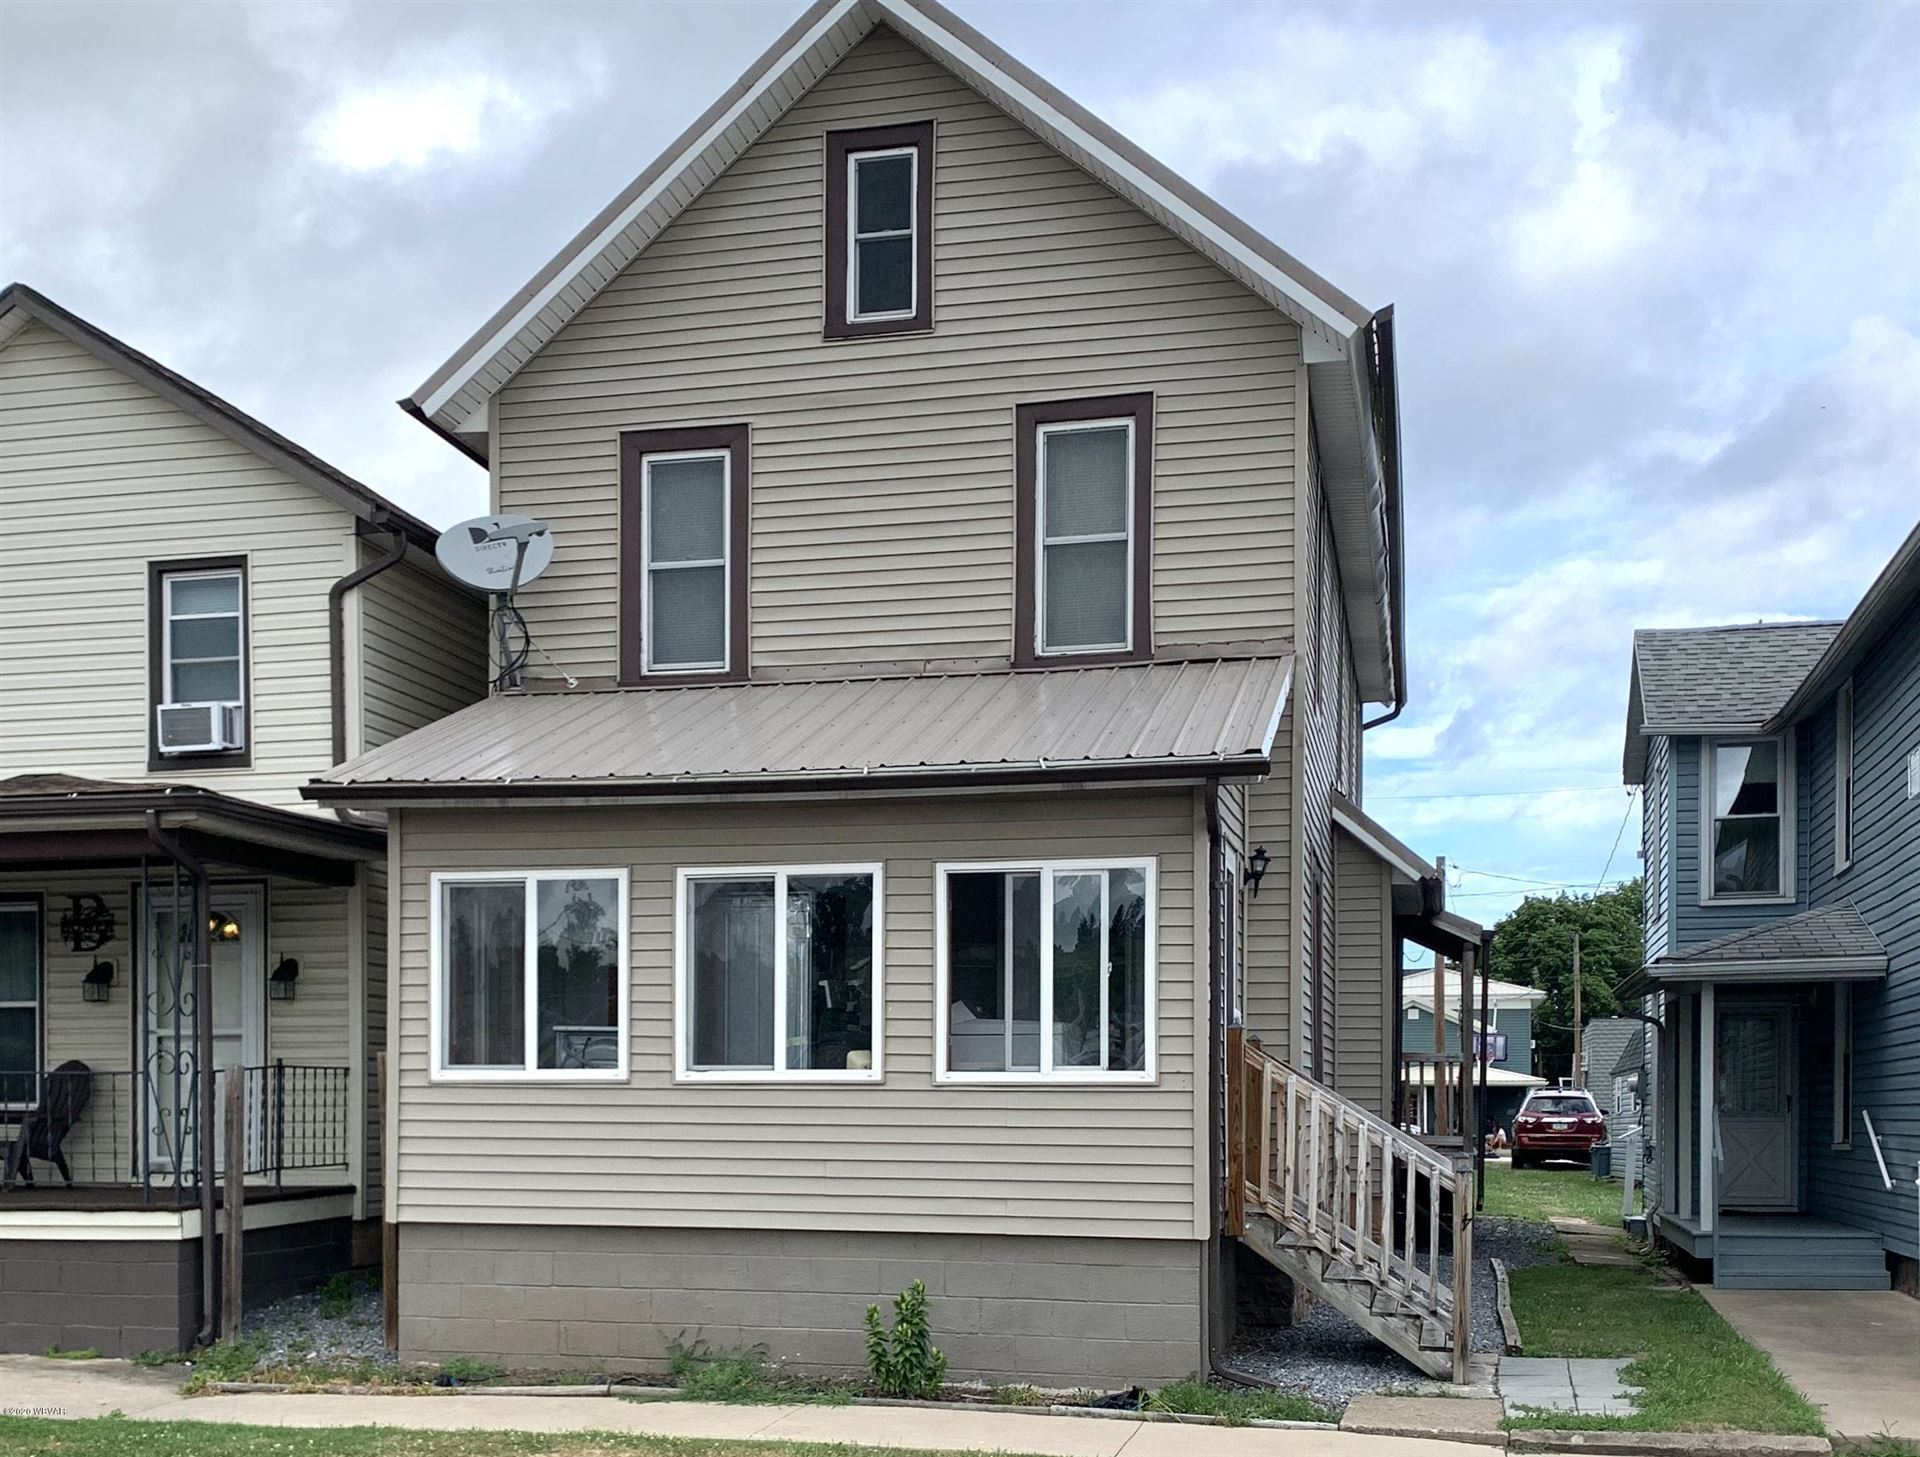 24 COMMERCE STREET, Lock Haven, PA 17745 - #: WB-90579